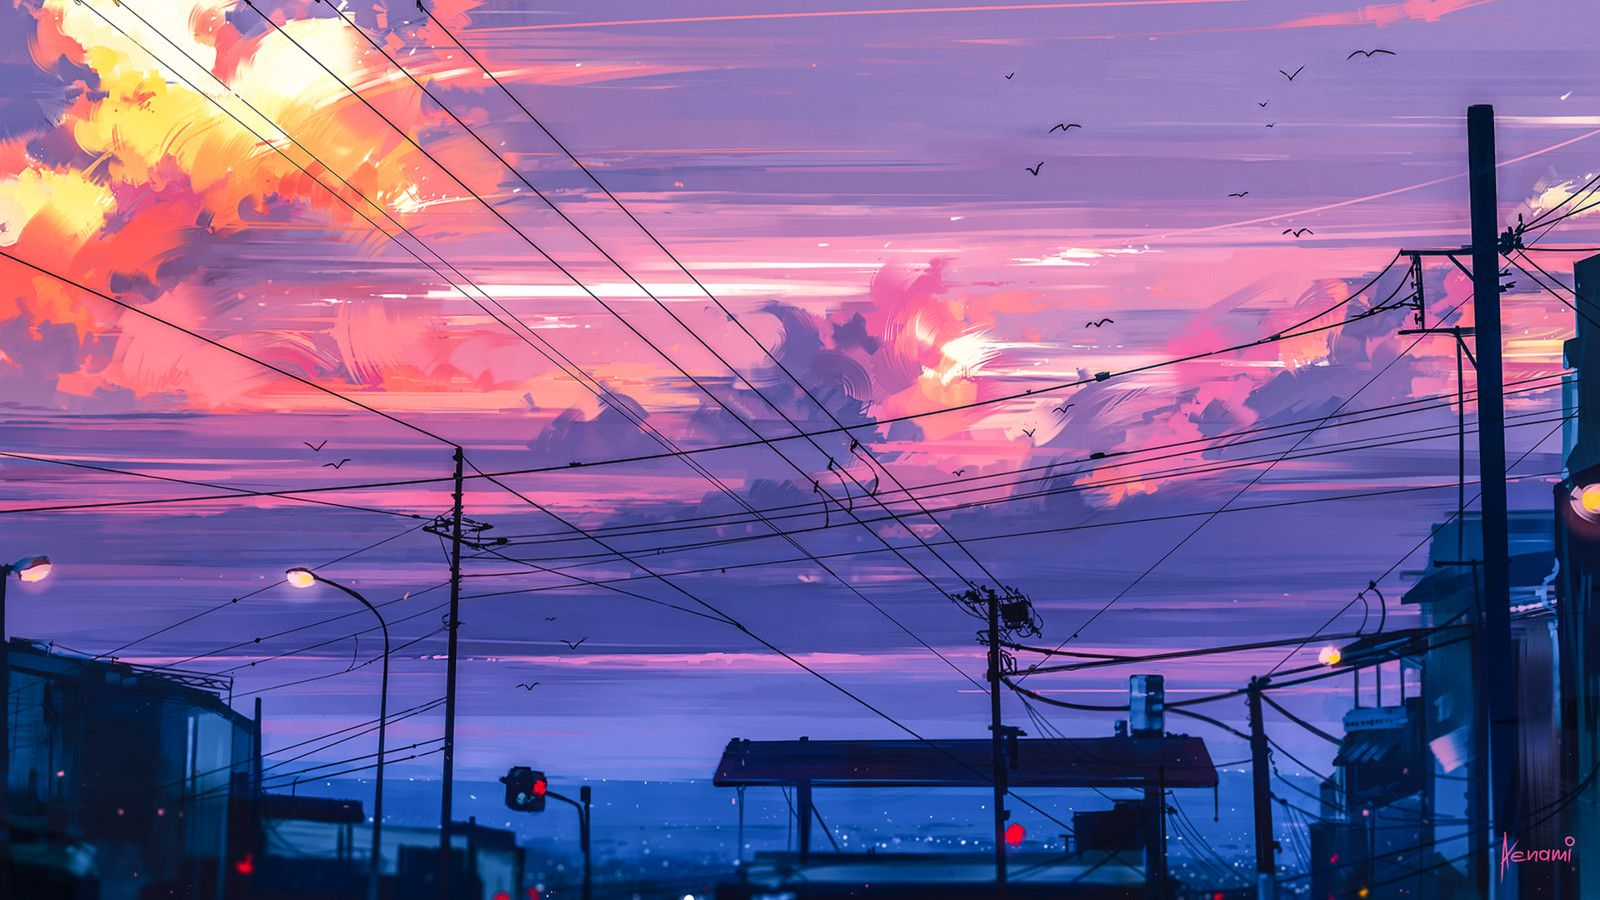 From This Moment Alena Aenami On Artstation At Https Www Artstation Com Artw Desktop Wallpaper Art Anime Backgrounds Wallpapers Aesthetic Desktop Wallpaper